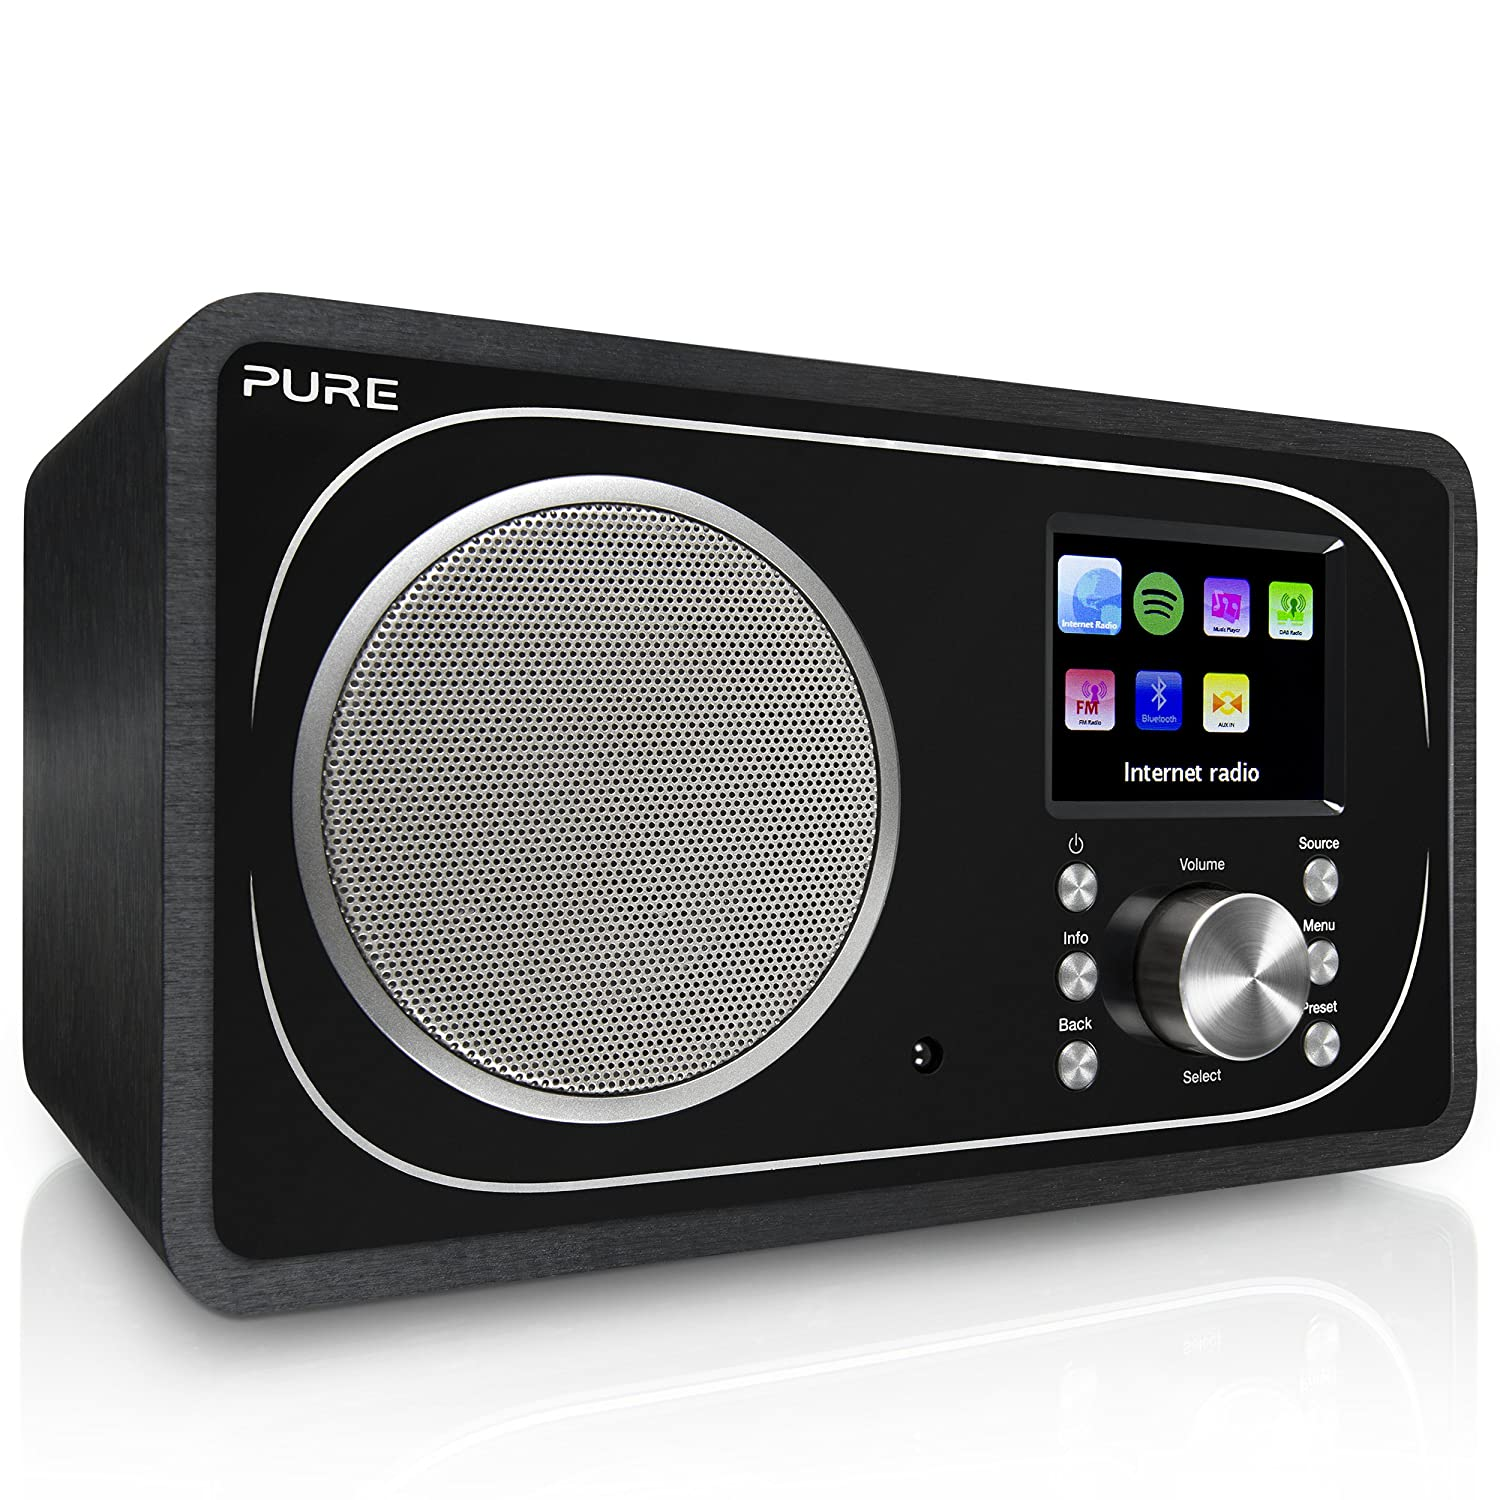 Portable Radios And Dab The Radio Builder Mw Receiverreflexive Radio2t Pure Evoke F3 Internet Digital Fm With Spotify Connect